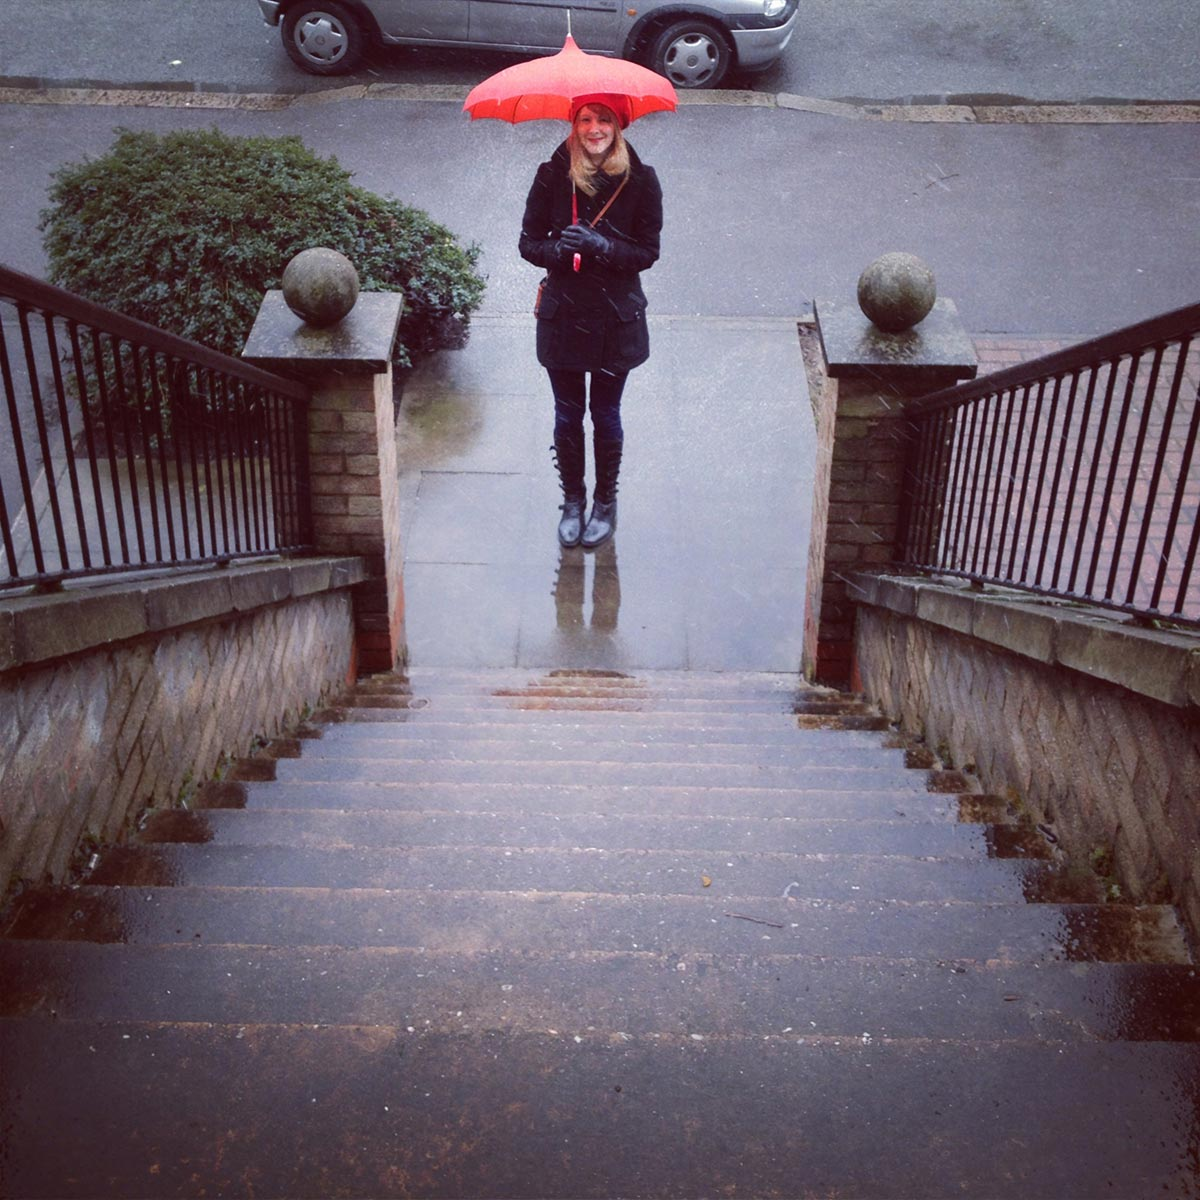 Lucy and her red umbrella, Coppermill Lane